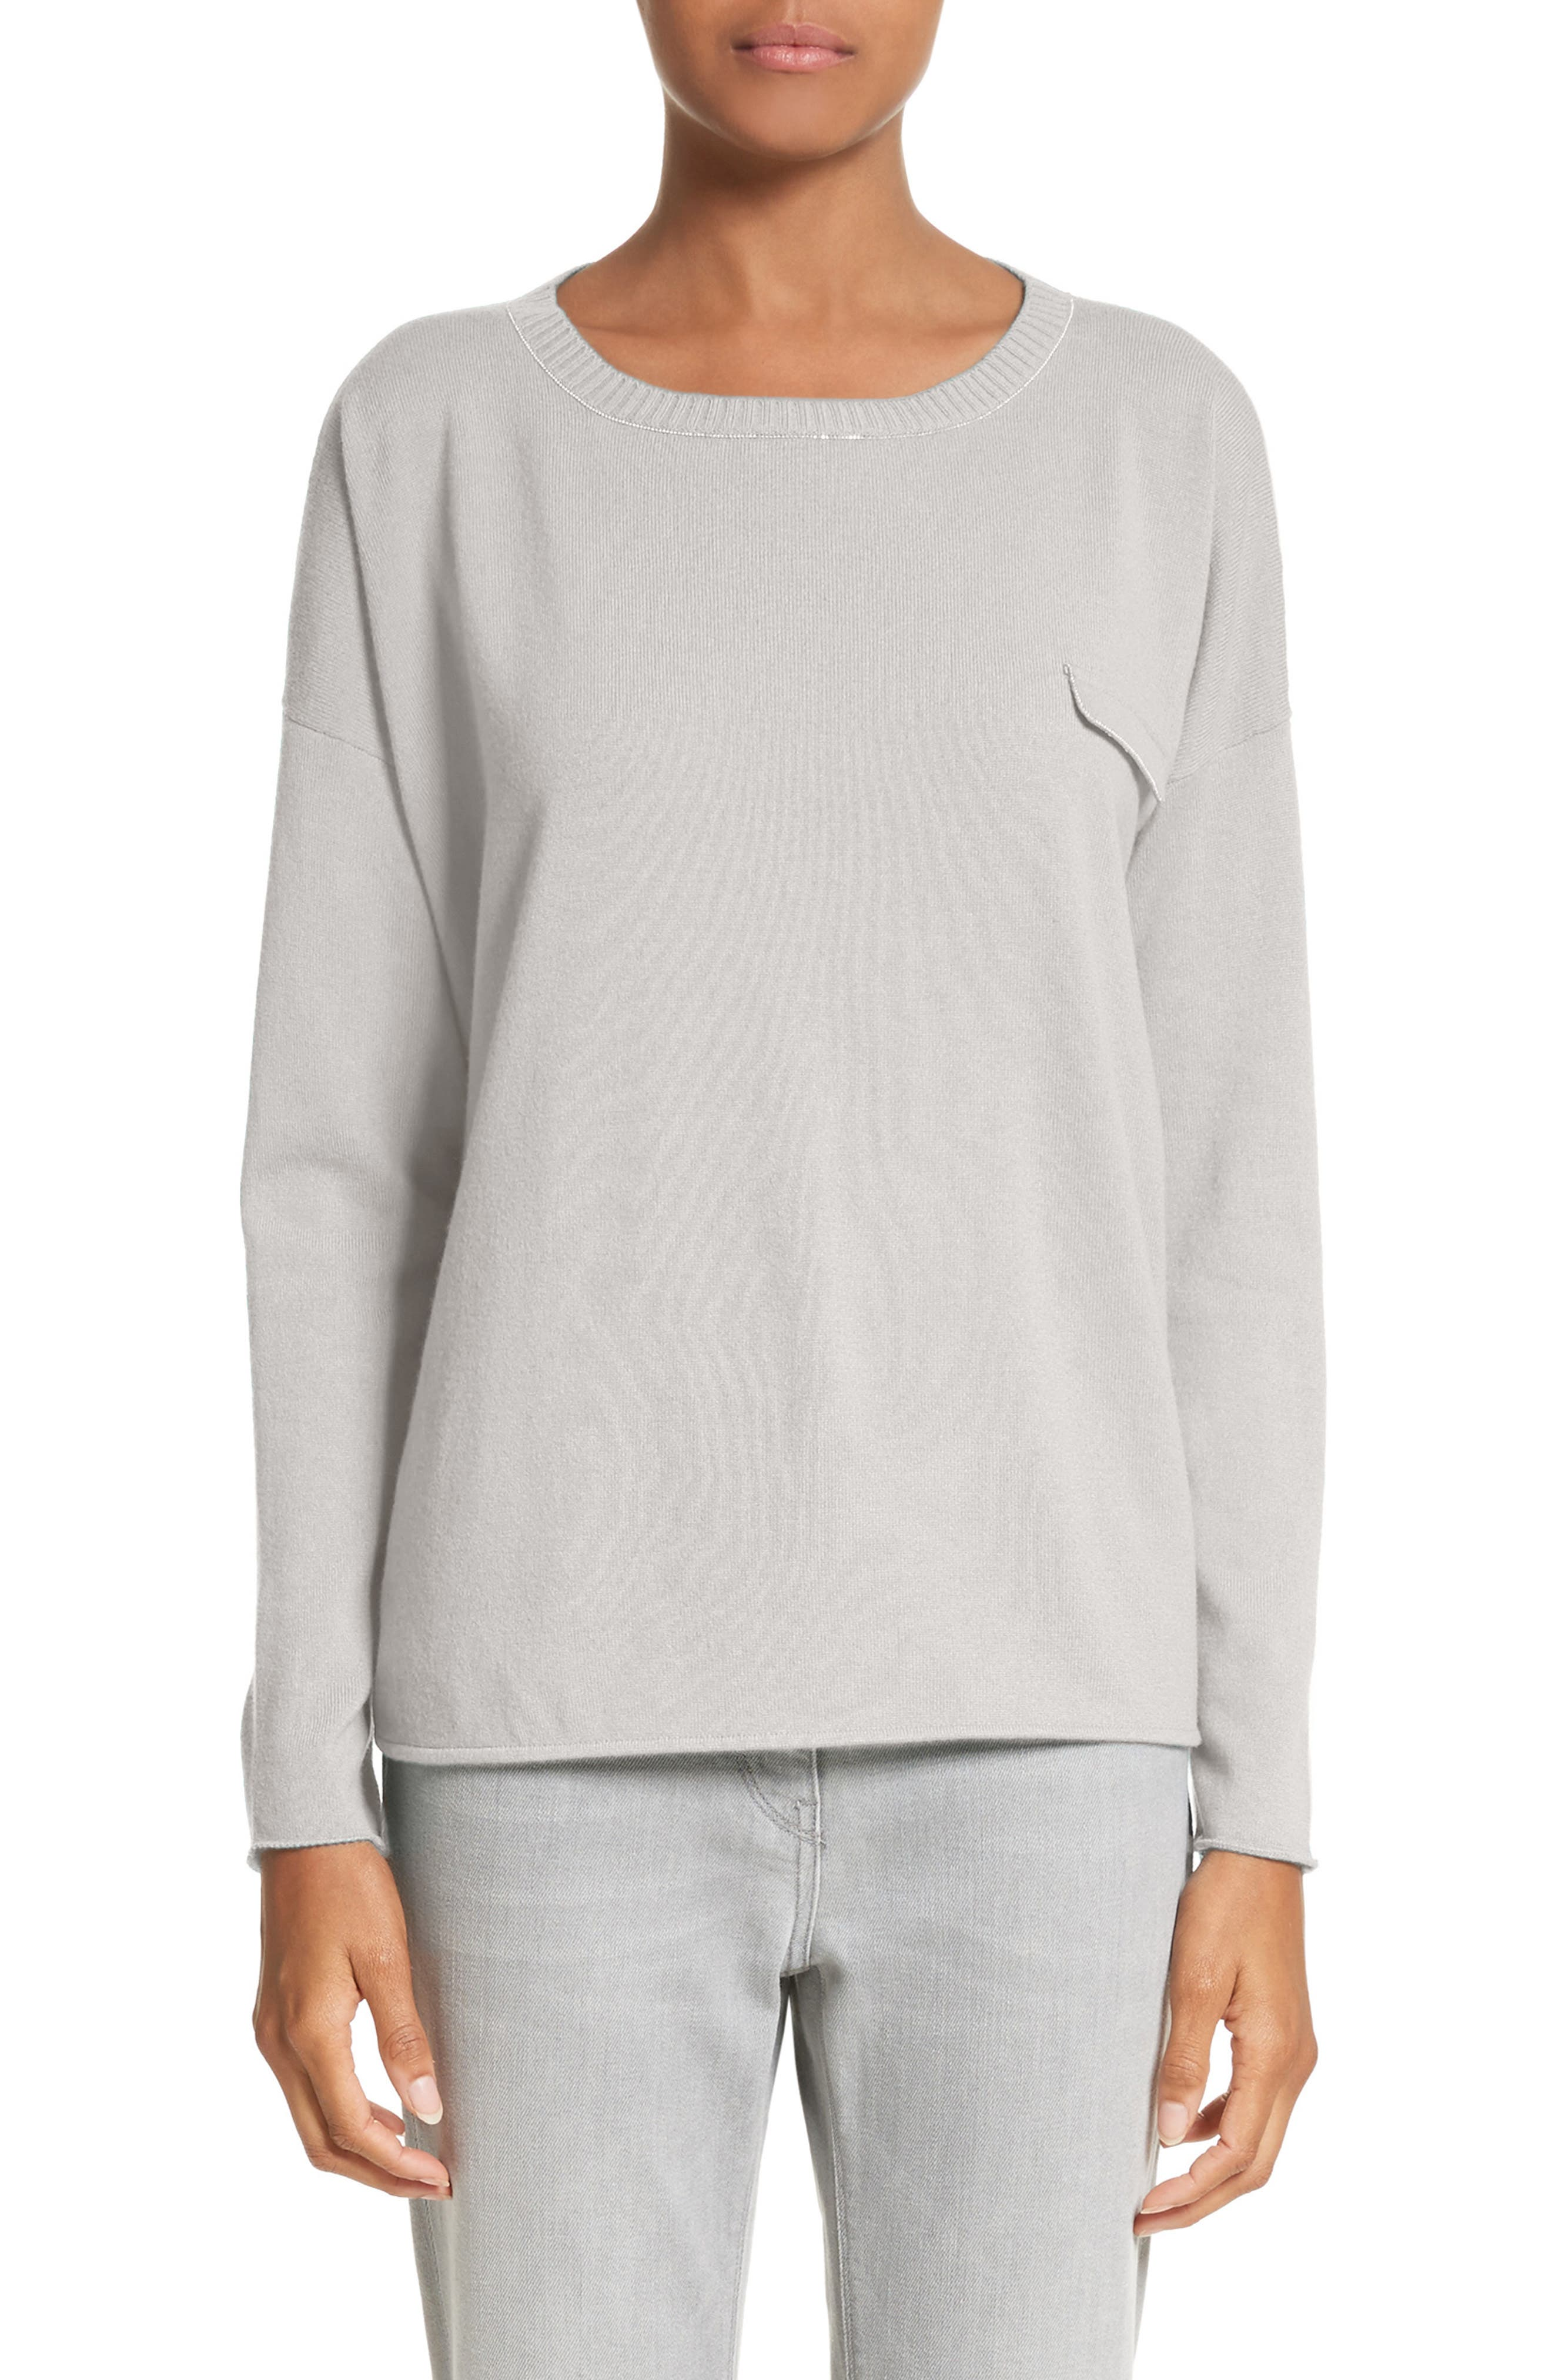 Beaded Cashmere Sweater,                         Main,                         color, 050